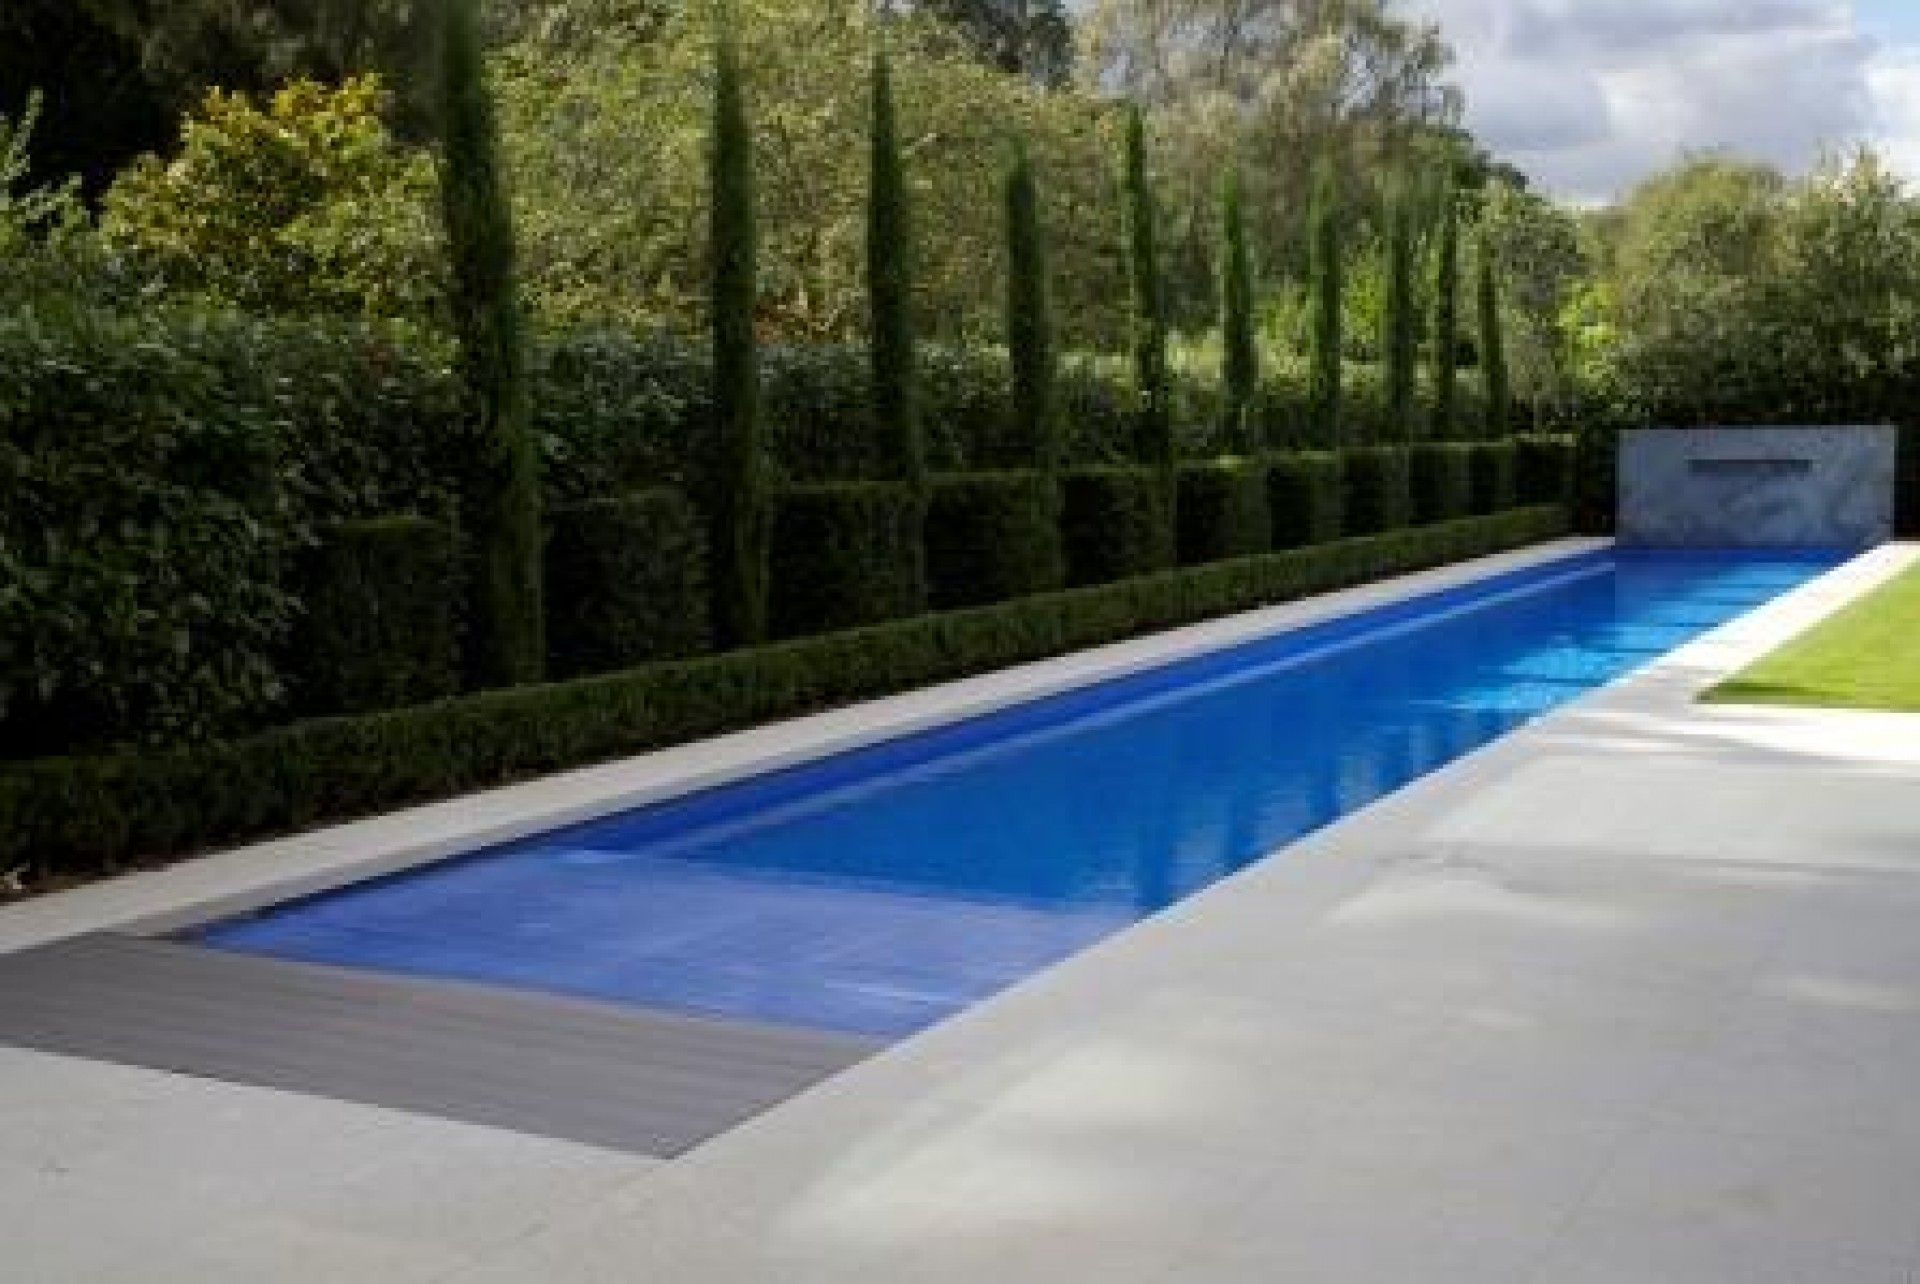 Lap Swimming Pool Designs Classy Swiming Pools Trees Fence With Waterfall Jet Also Pool Paint And . Decorating Design